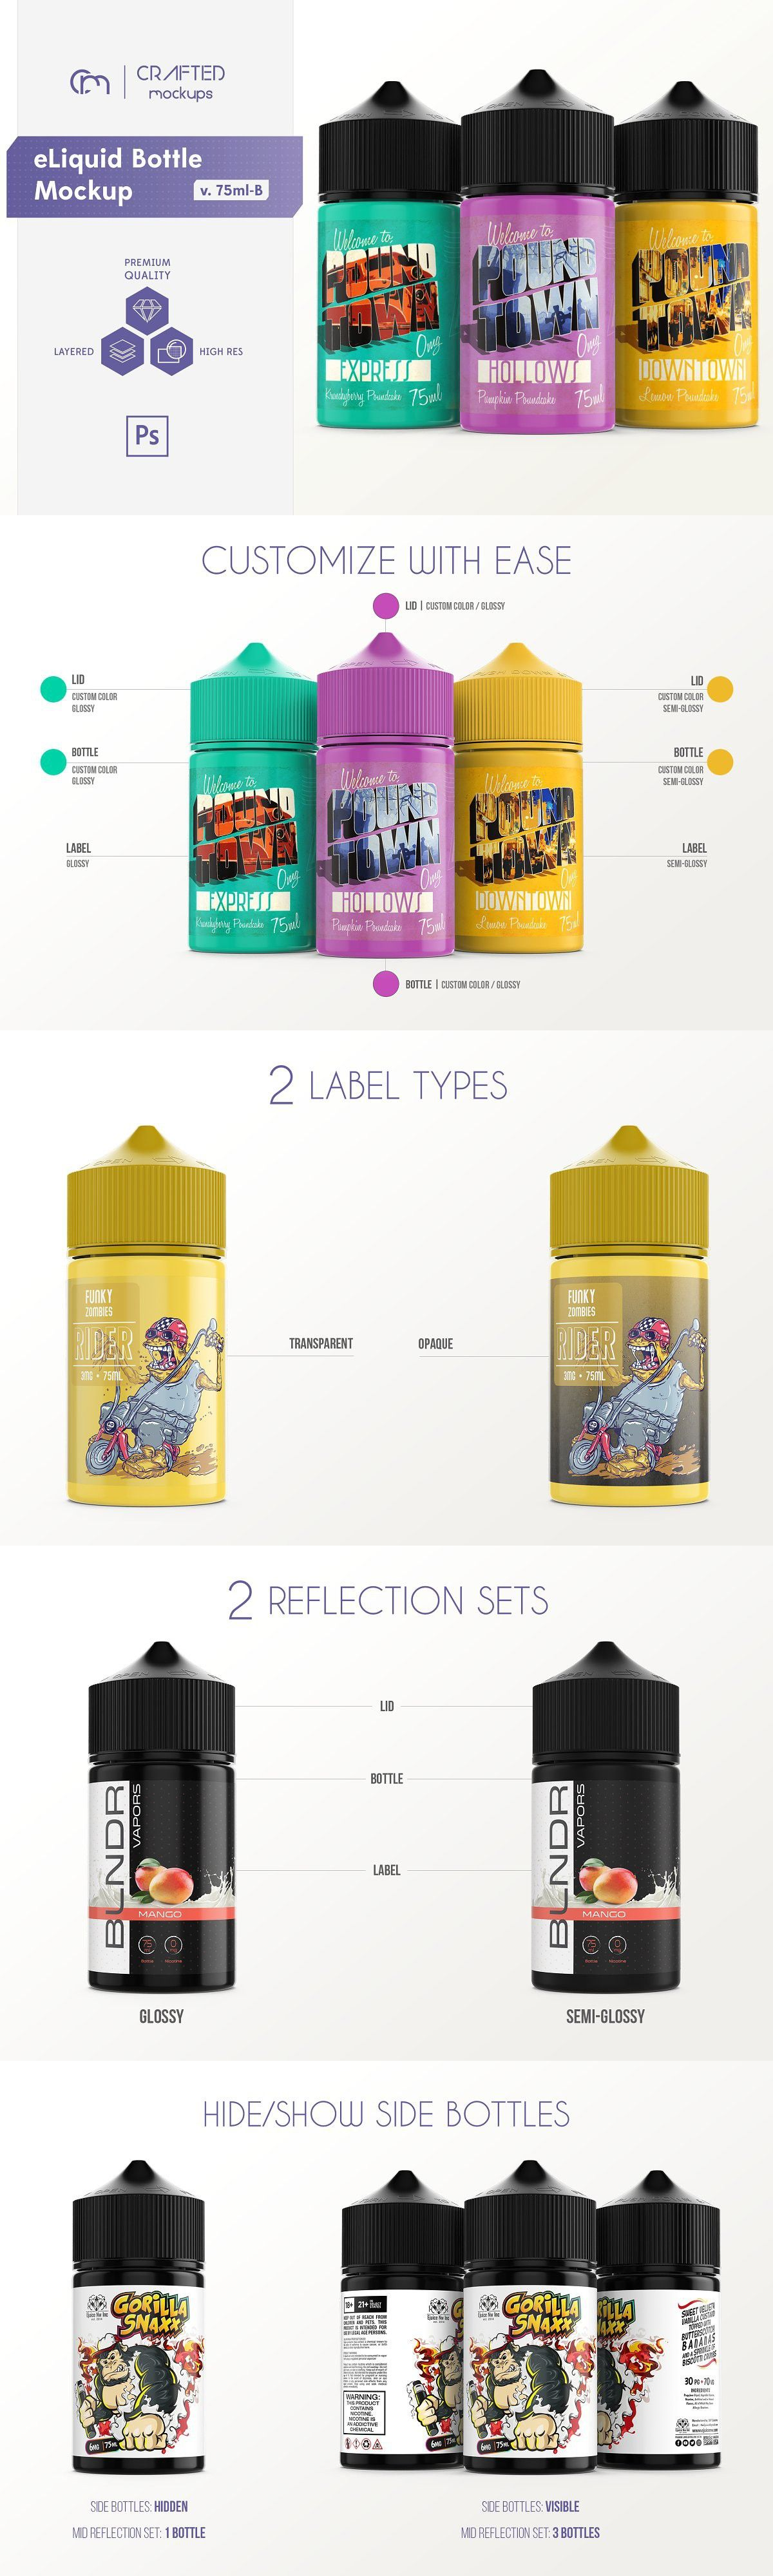 Are you looking for vape bottle mockups for your unicorn or chubby gorilla bottles? Chubby Gorilla Bottle Mockup Psd Wine Bottle Paper Wrap Mockup Download Free And Premium Psd Free Chubby Gorilla 60ml Vape Li